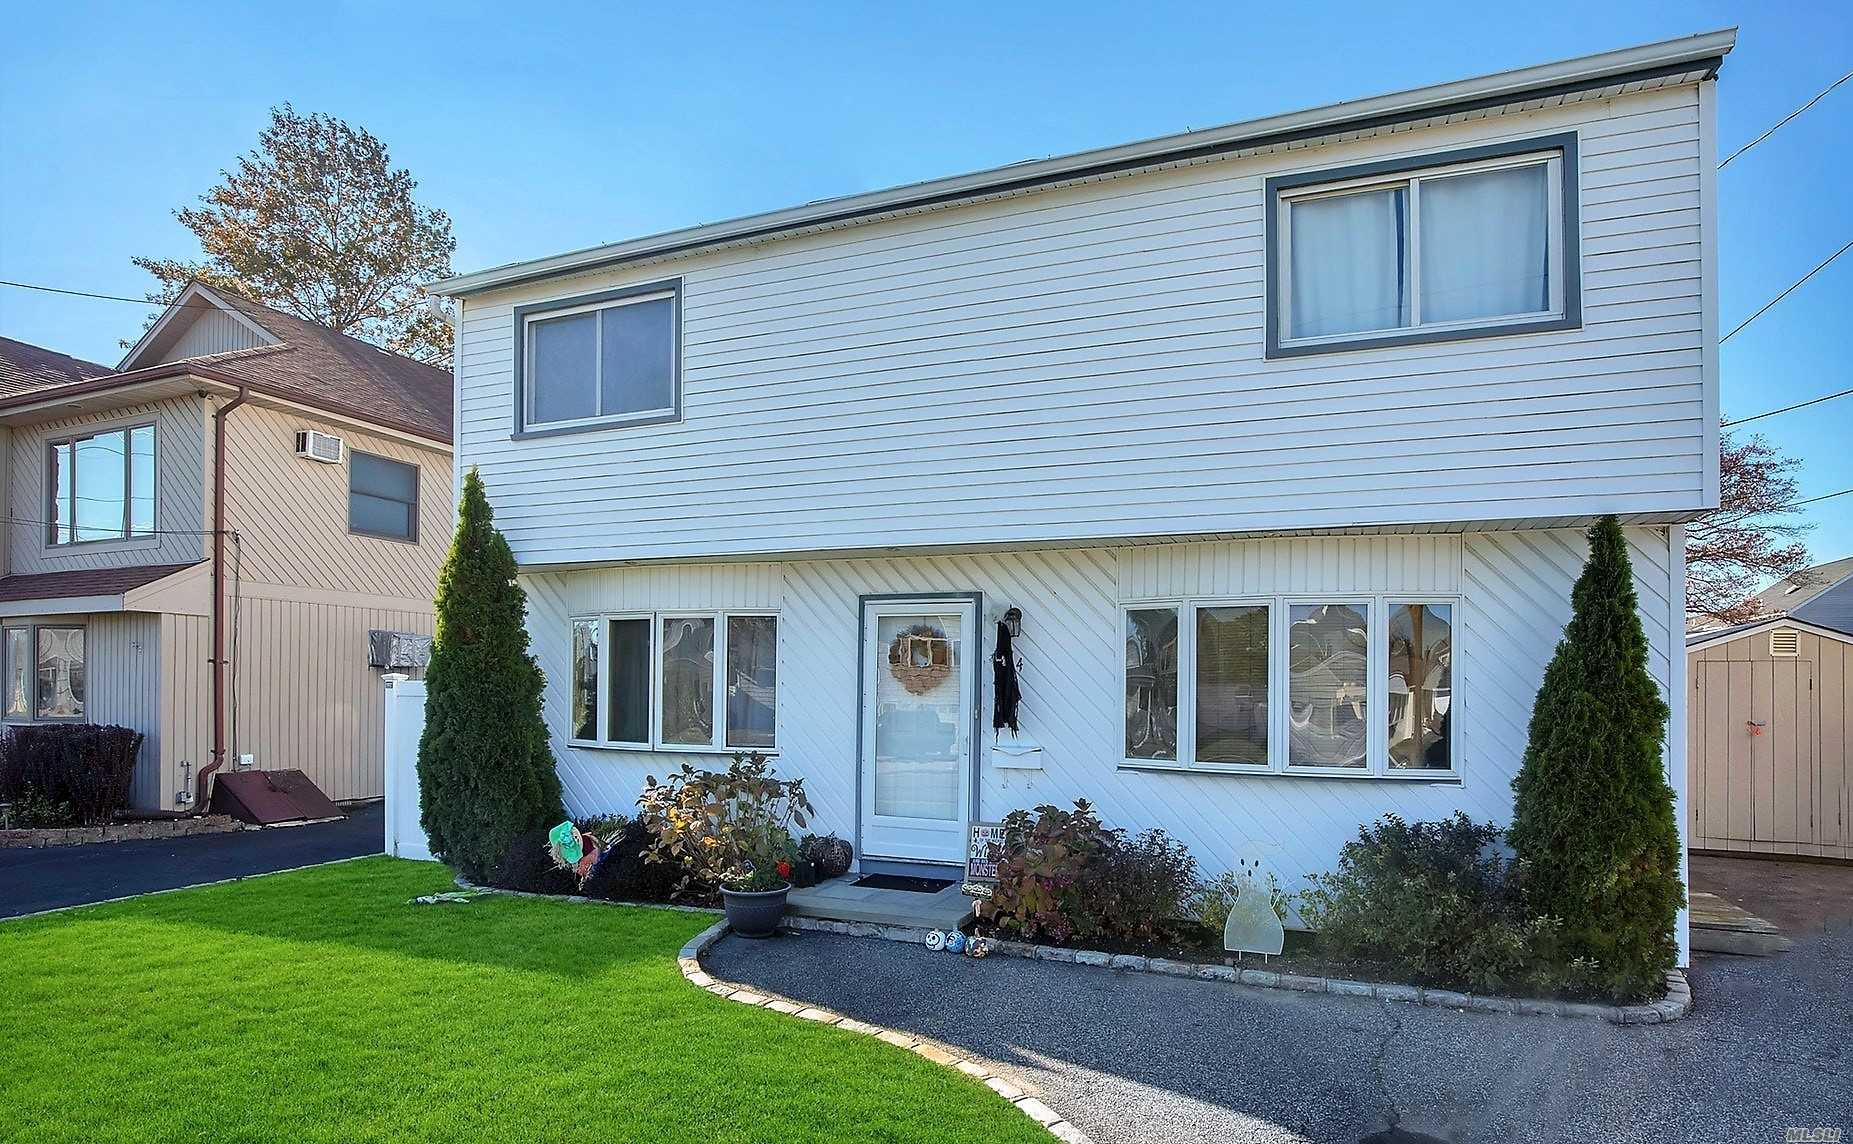 214 Division Ave 11758 - One of Massapequa Homes for Sale